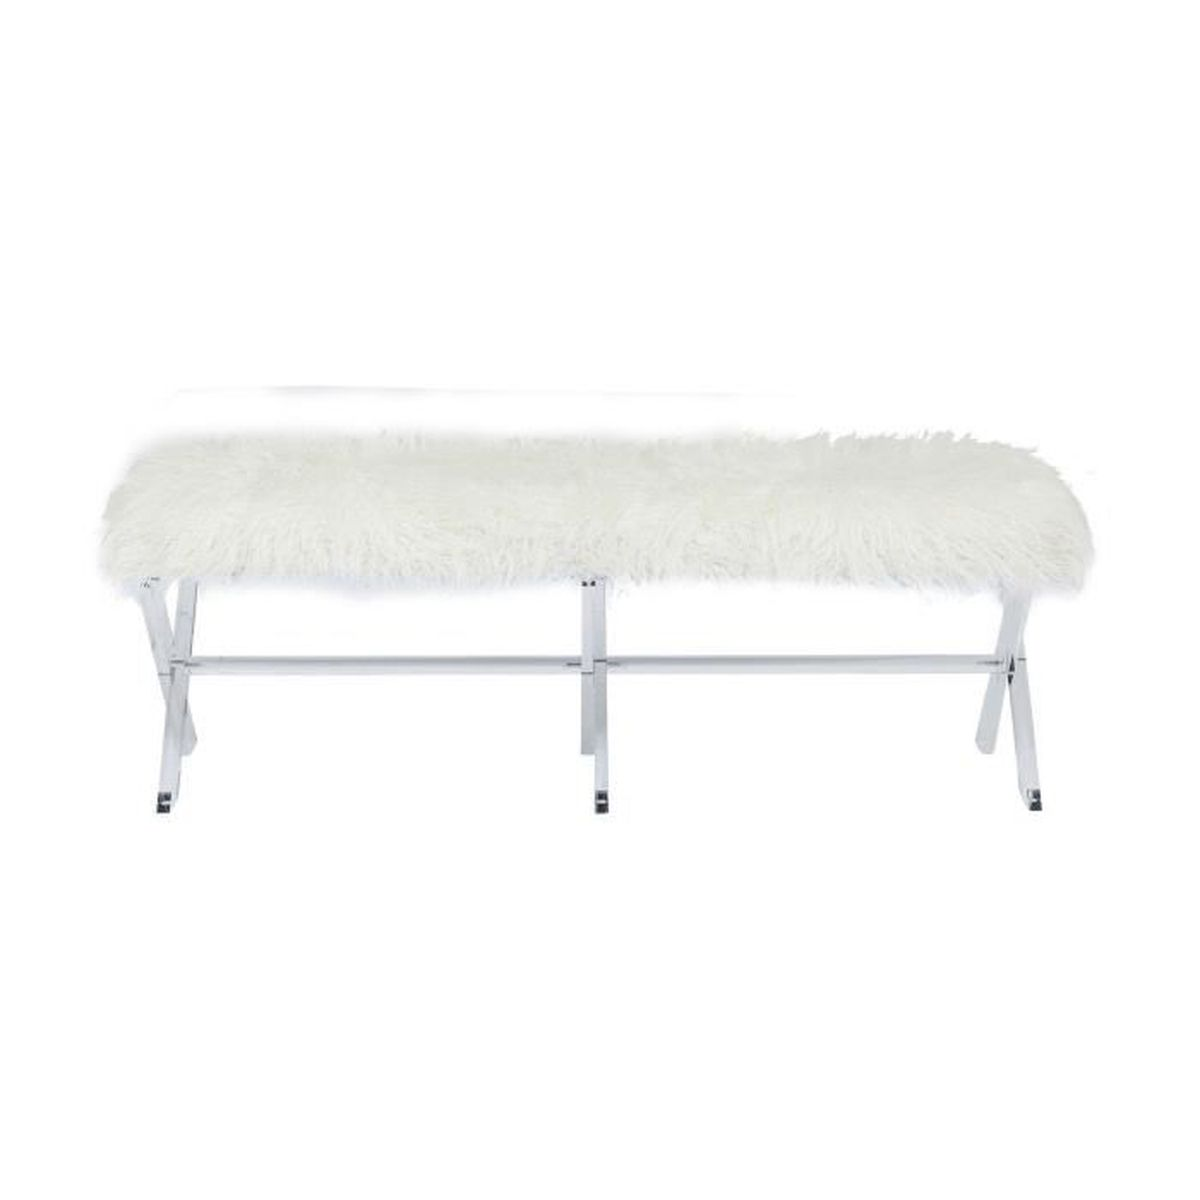 banc fur blanc kare design achat vente banc soldes d hiver d s le 11. Black Bedroom Furniture Sets. Home Design Ideas